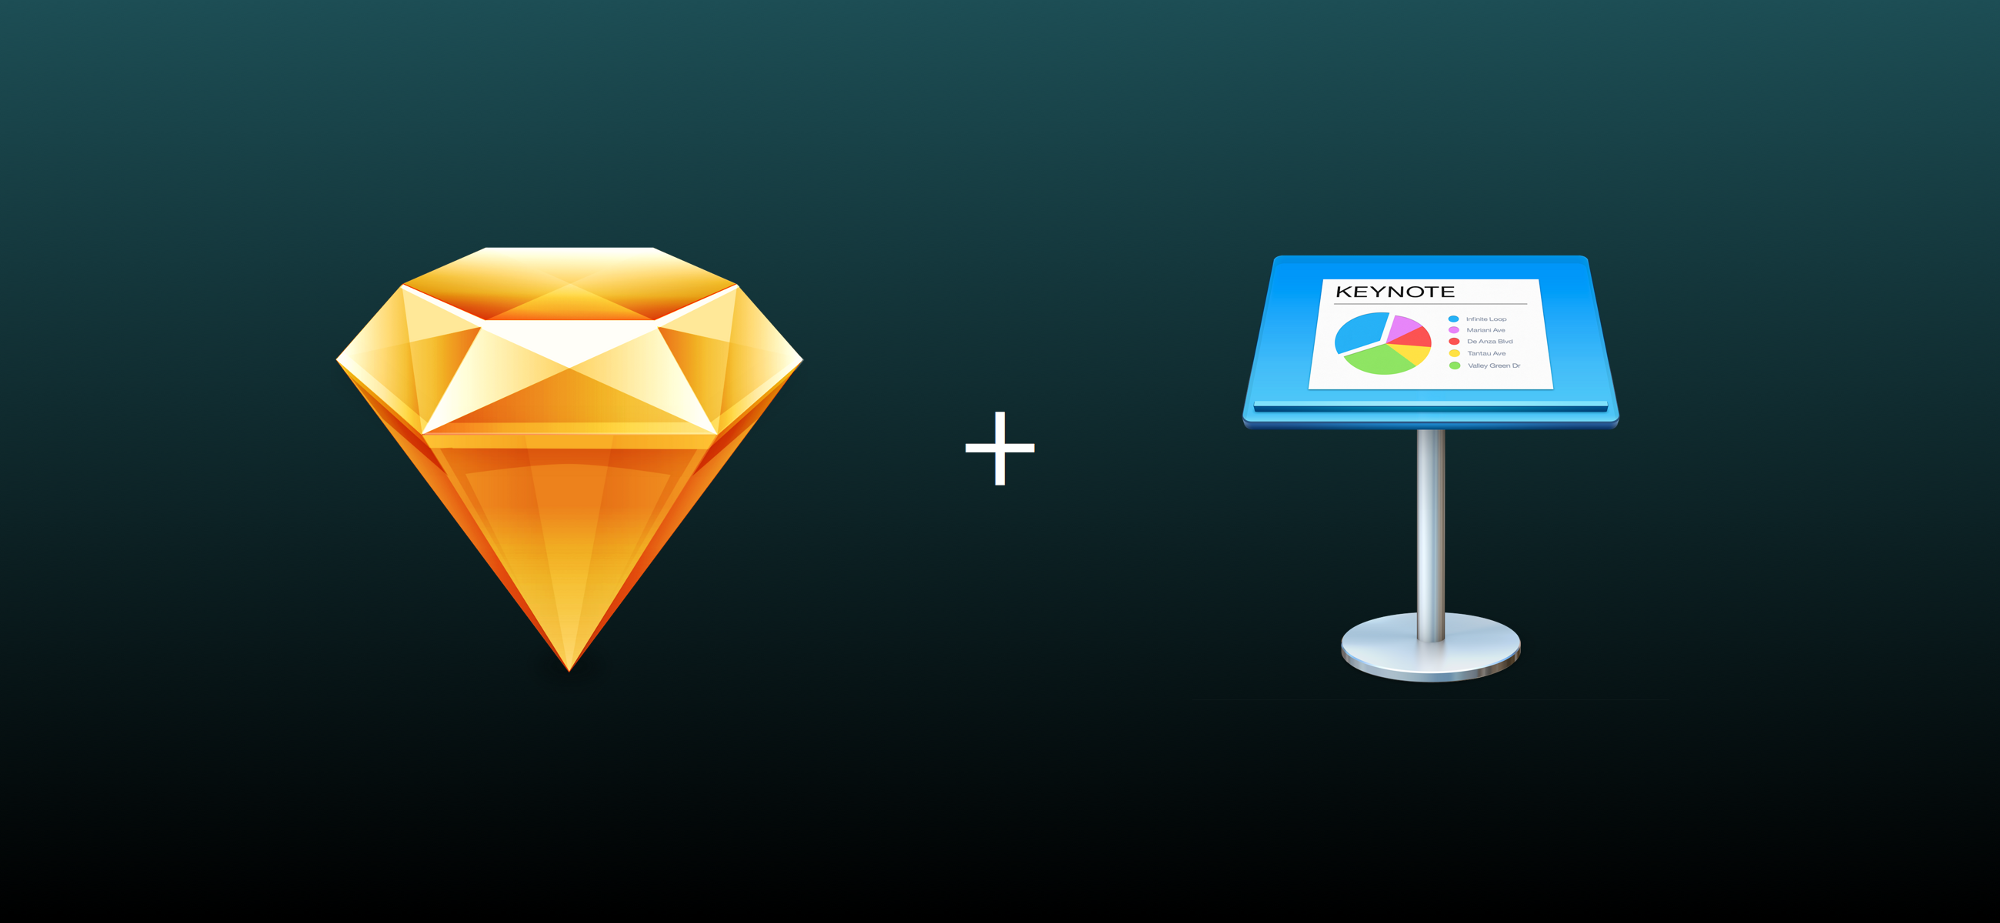 Using Sketch & Keynote for Prototyping